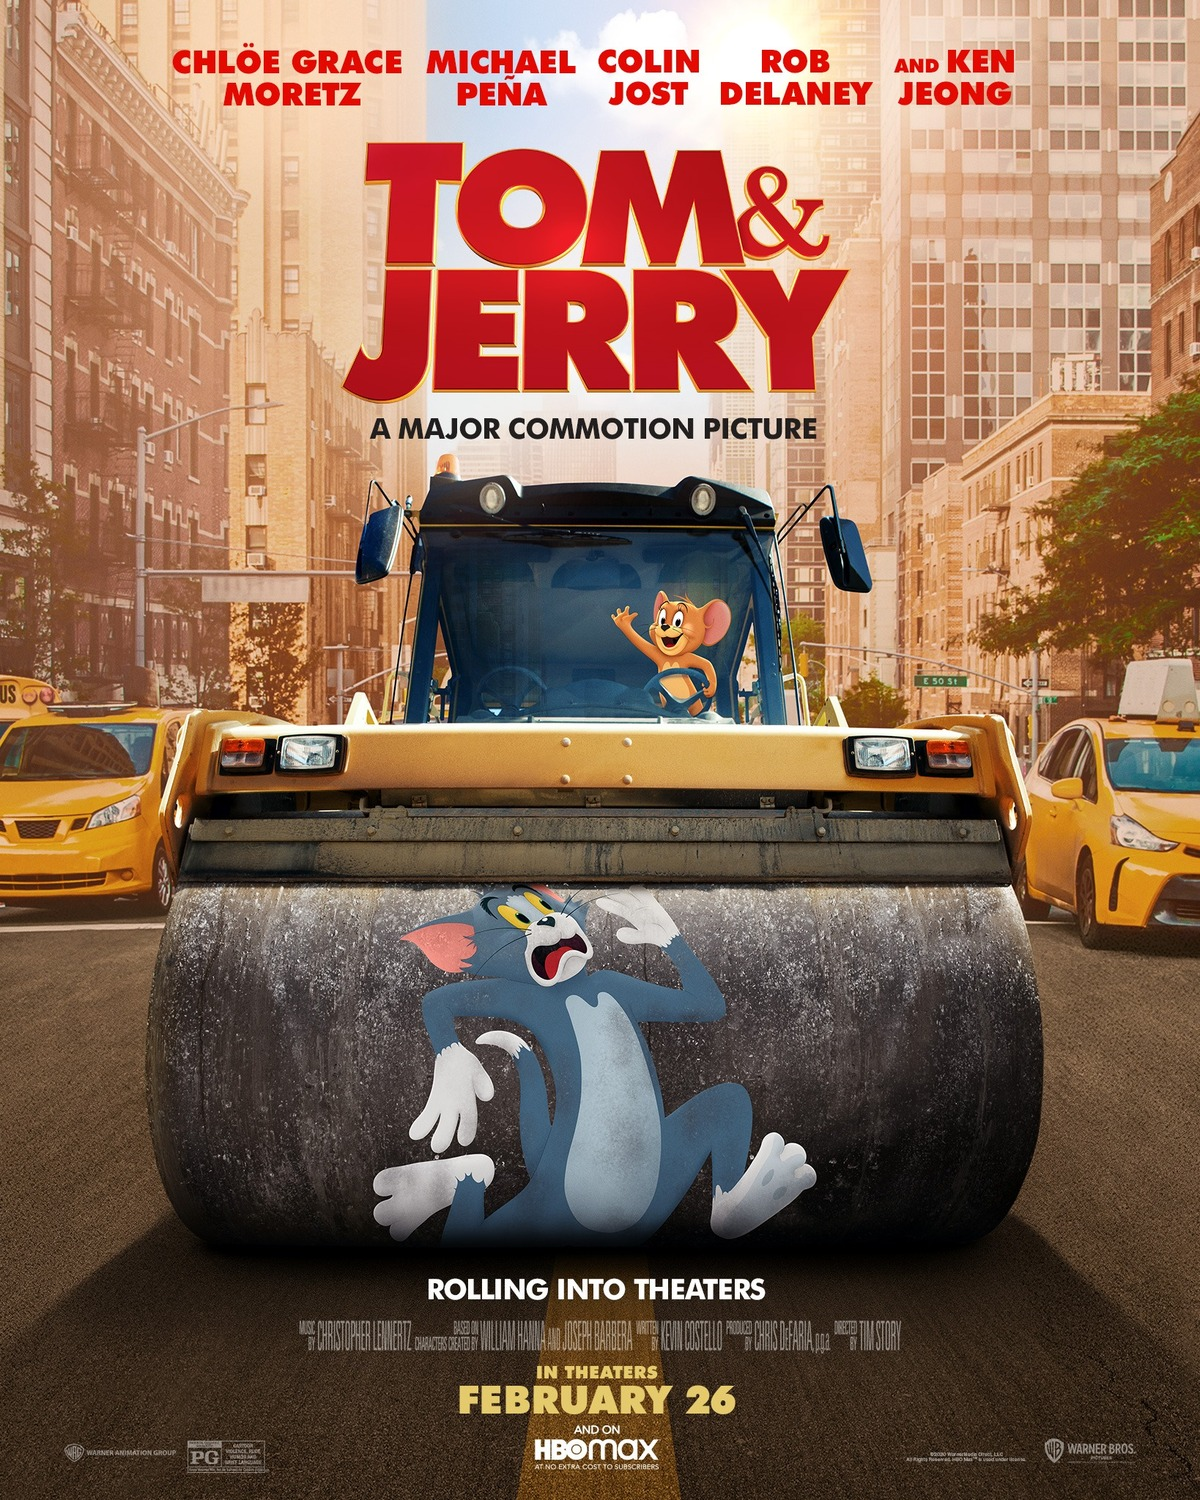 Tom and Jerry (2021)* - Whats After The Credits? | The Definitive After Credits Film Catalog Service